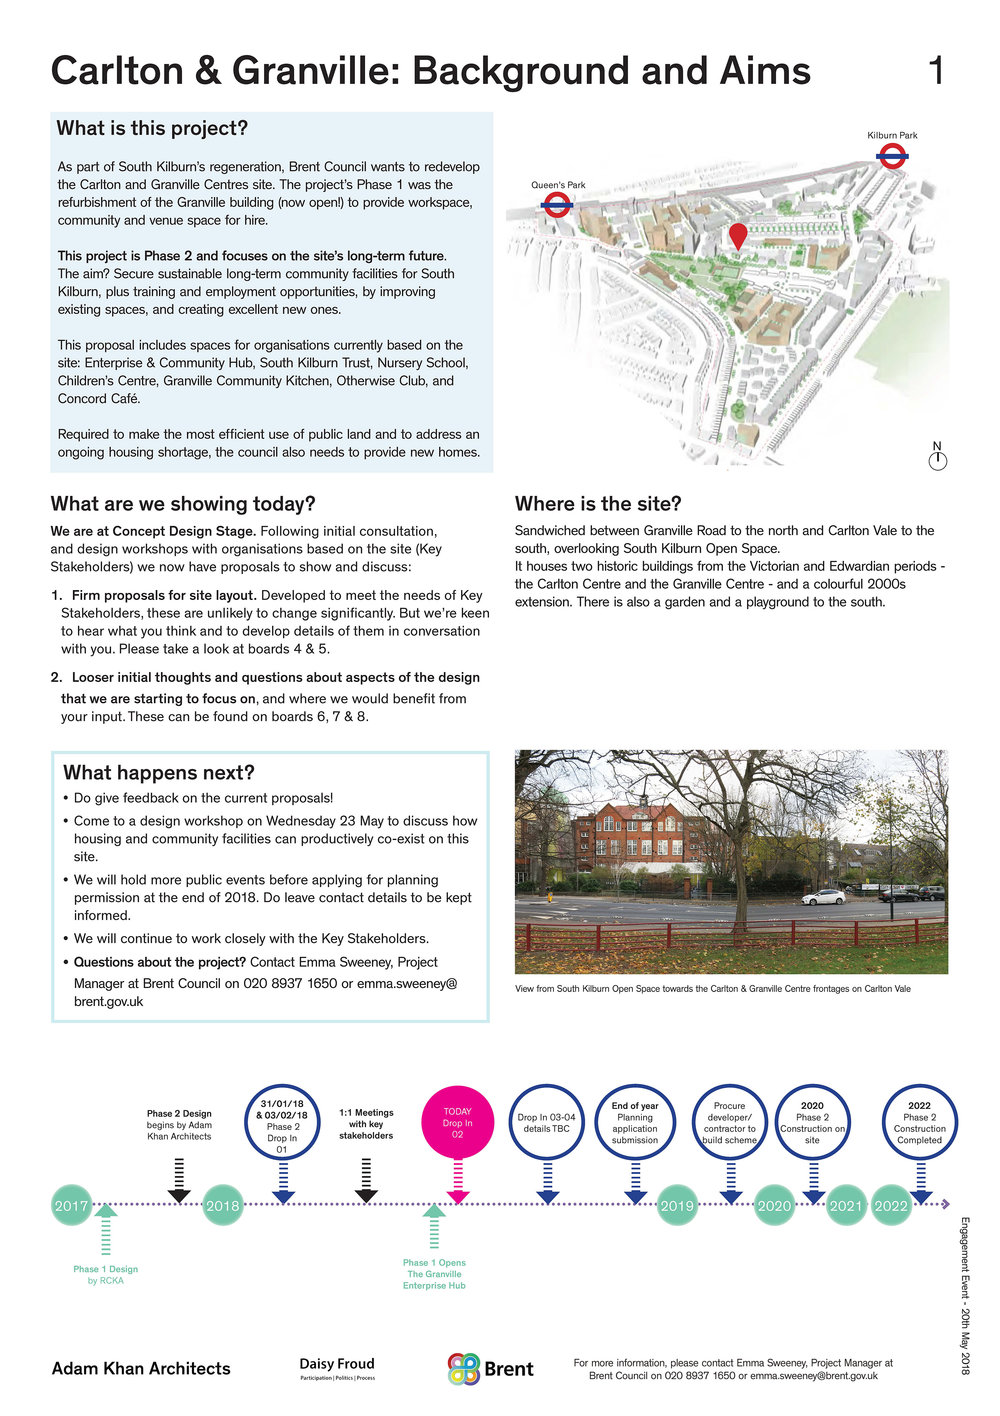 180514_Public Consultation 02_Boards v2_Page_1 LR.jpg